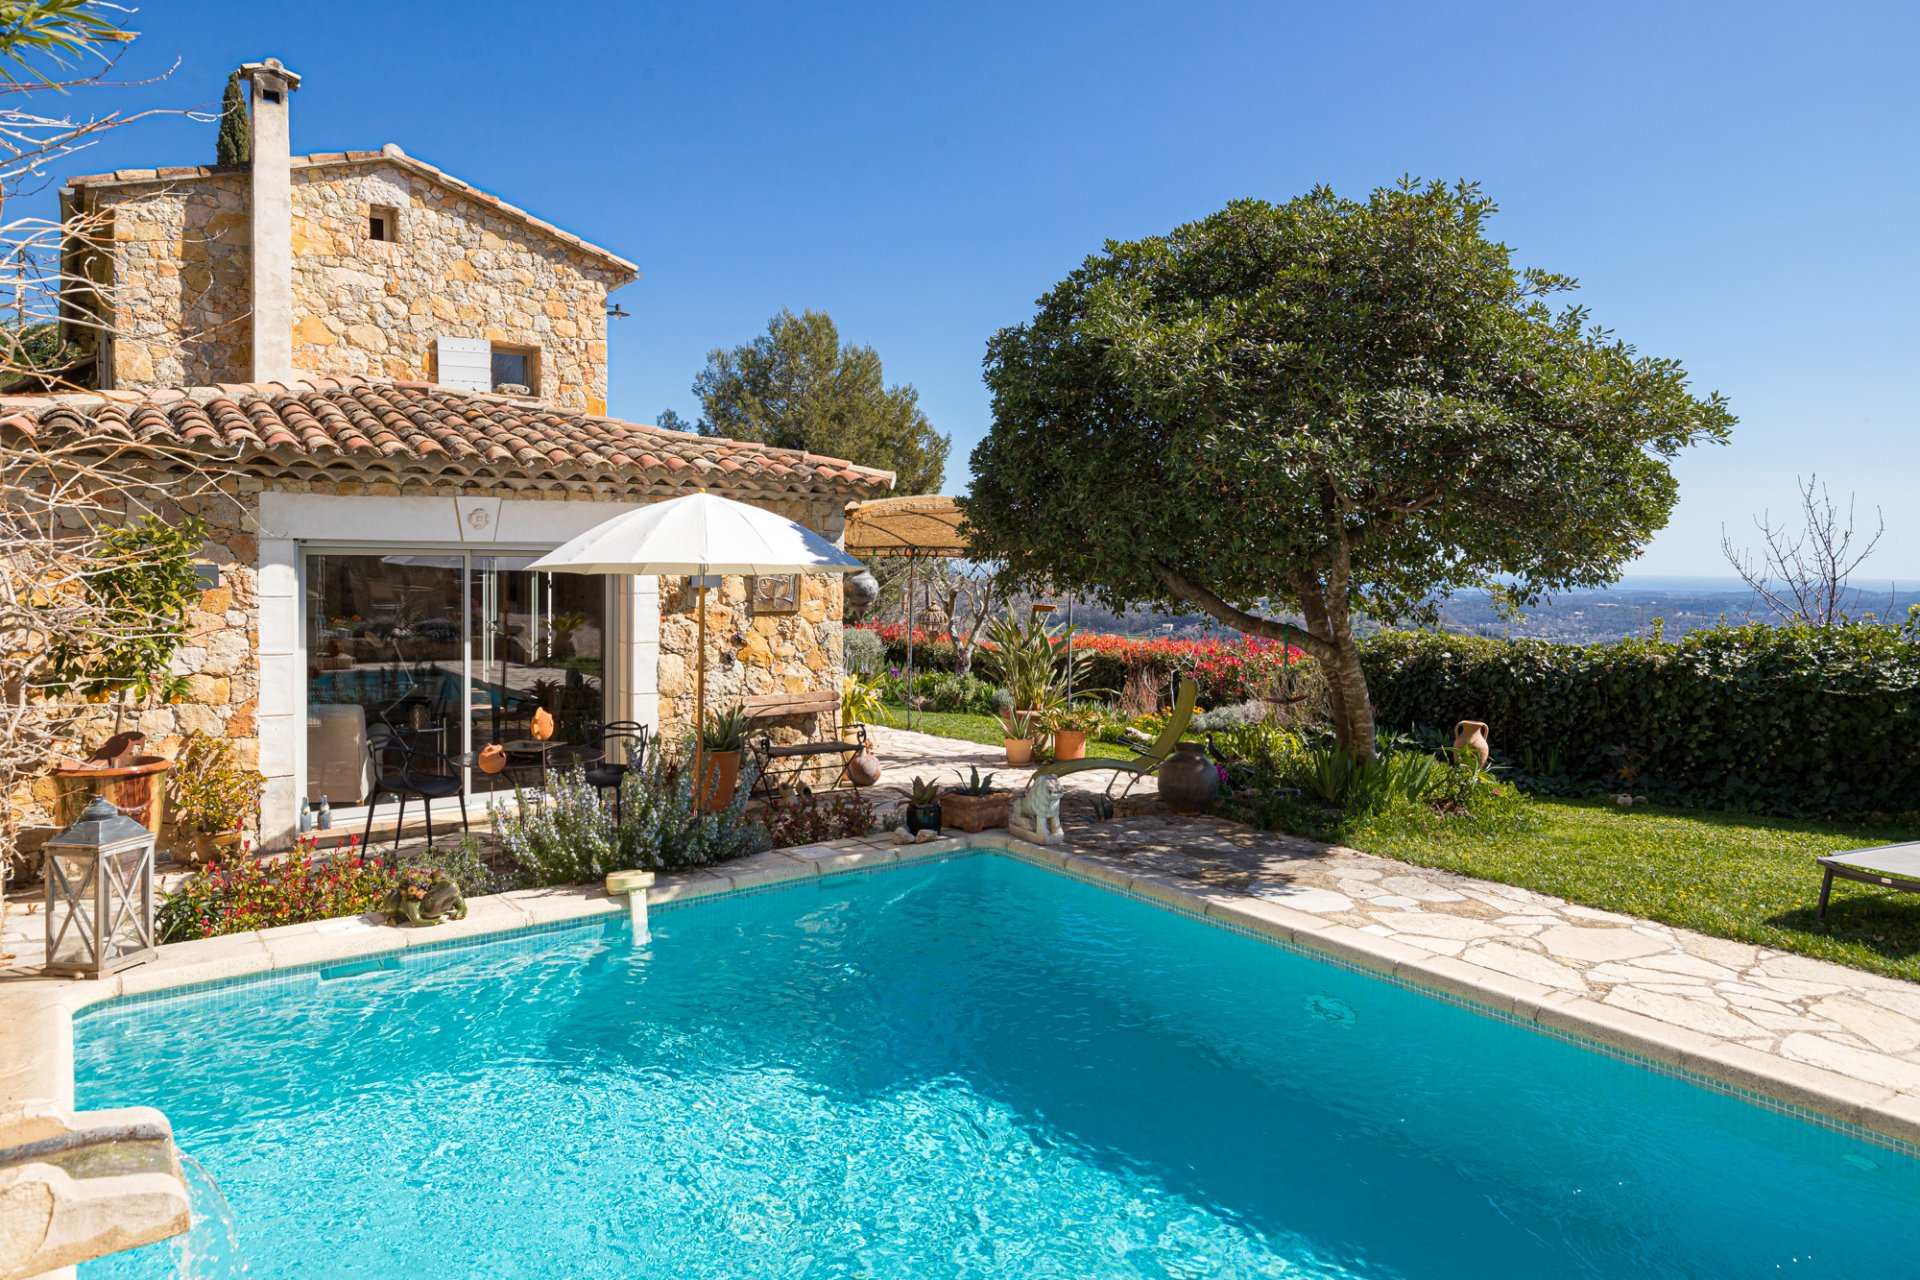 SOLE AGENT - Close to Châteauneuf-de-Grasse - Absolute Farm house Charm